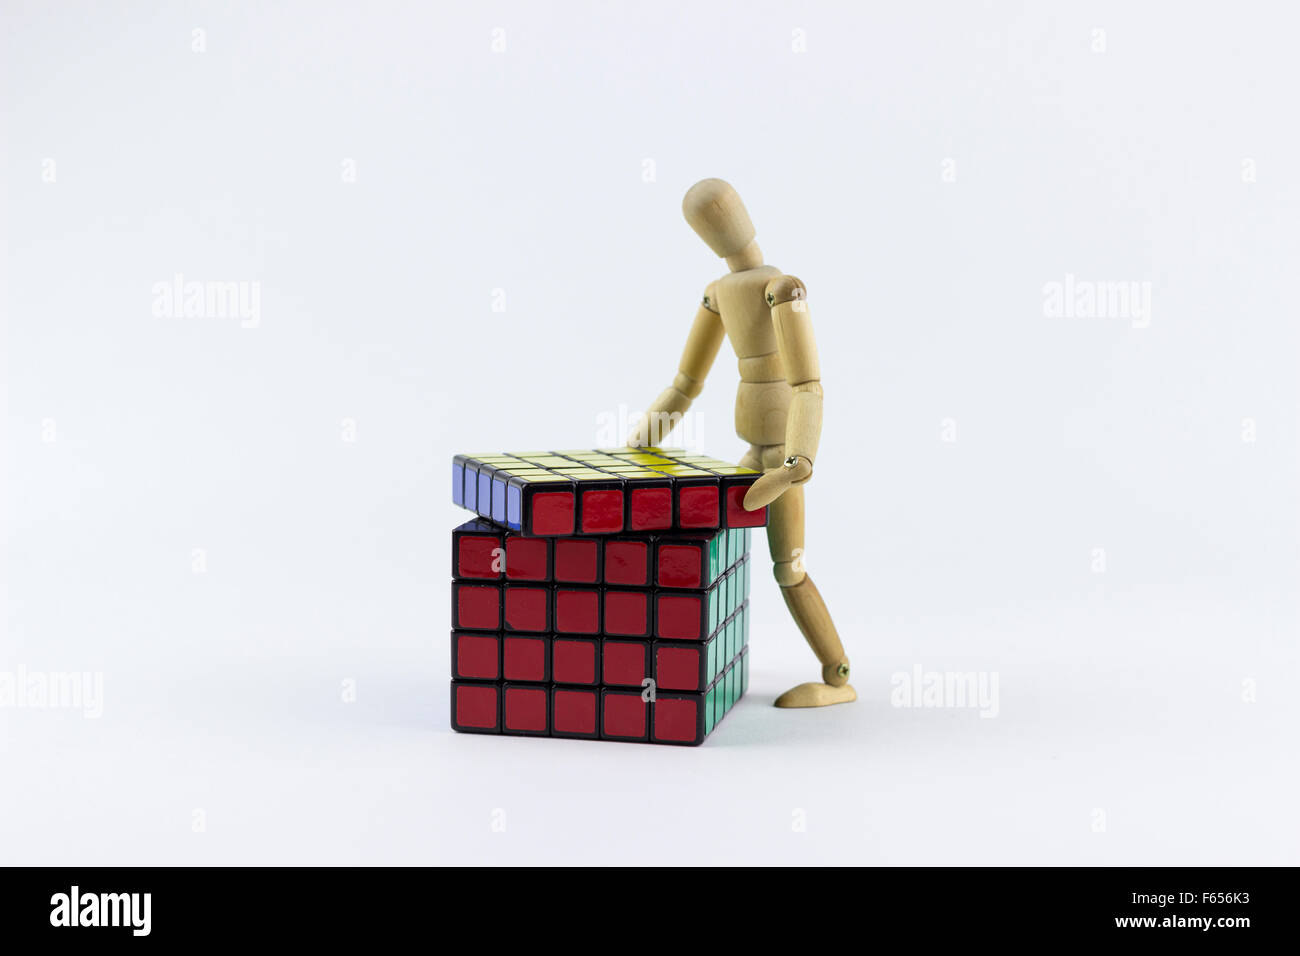 Wooden puppet trying to solve a puzzle cube, on a white background - Stock Image